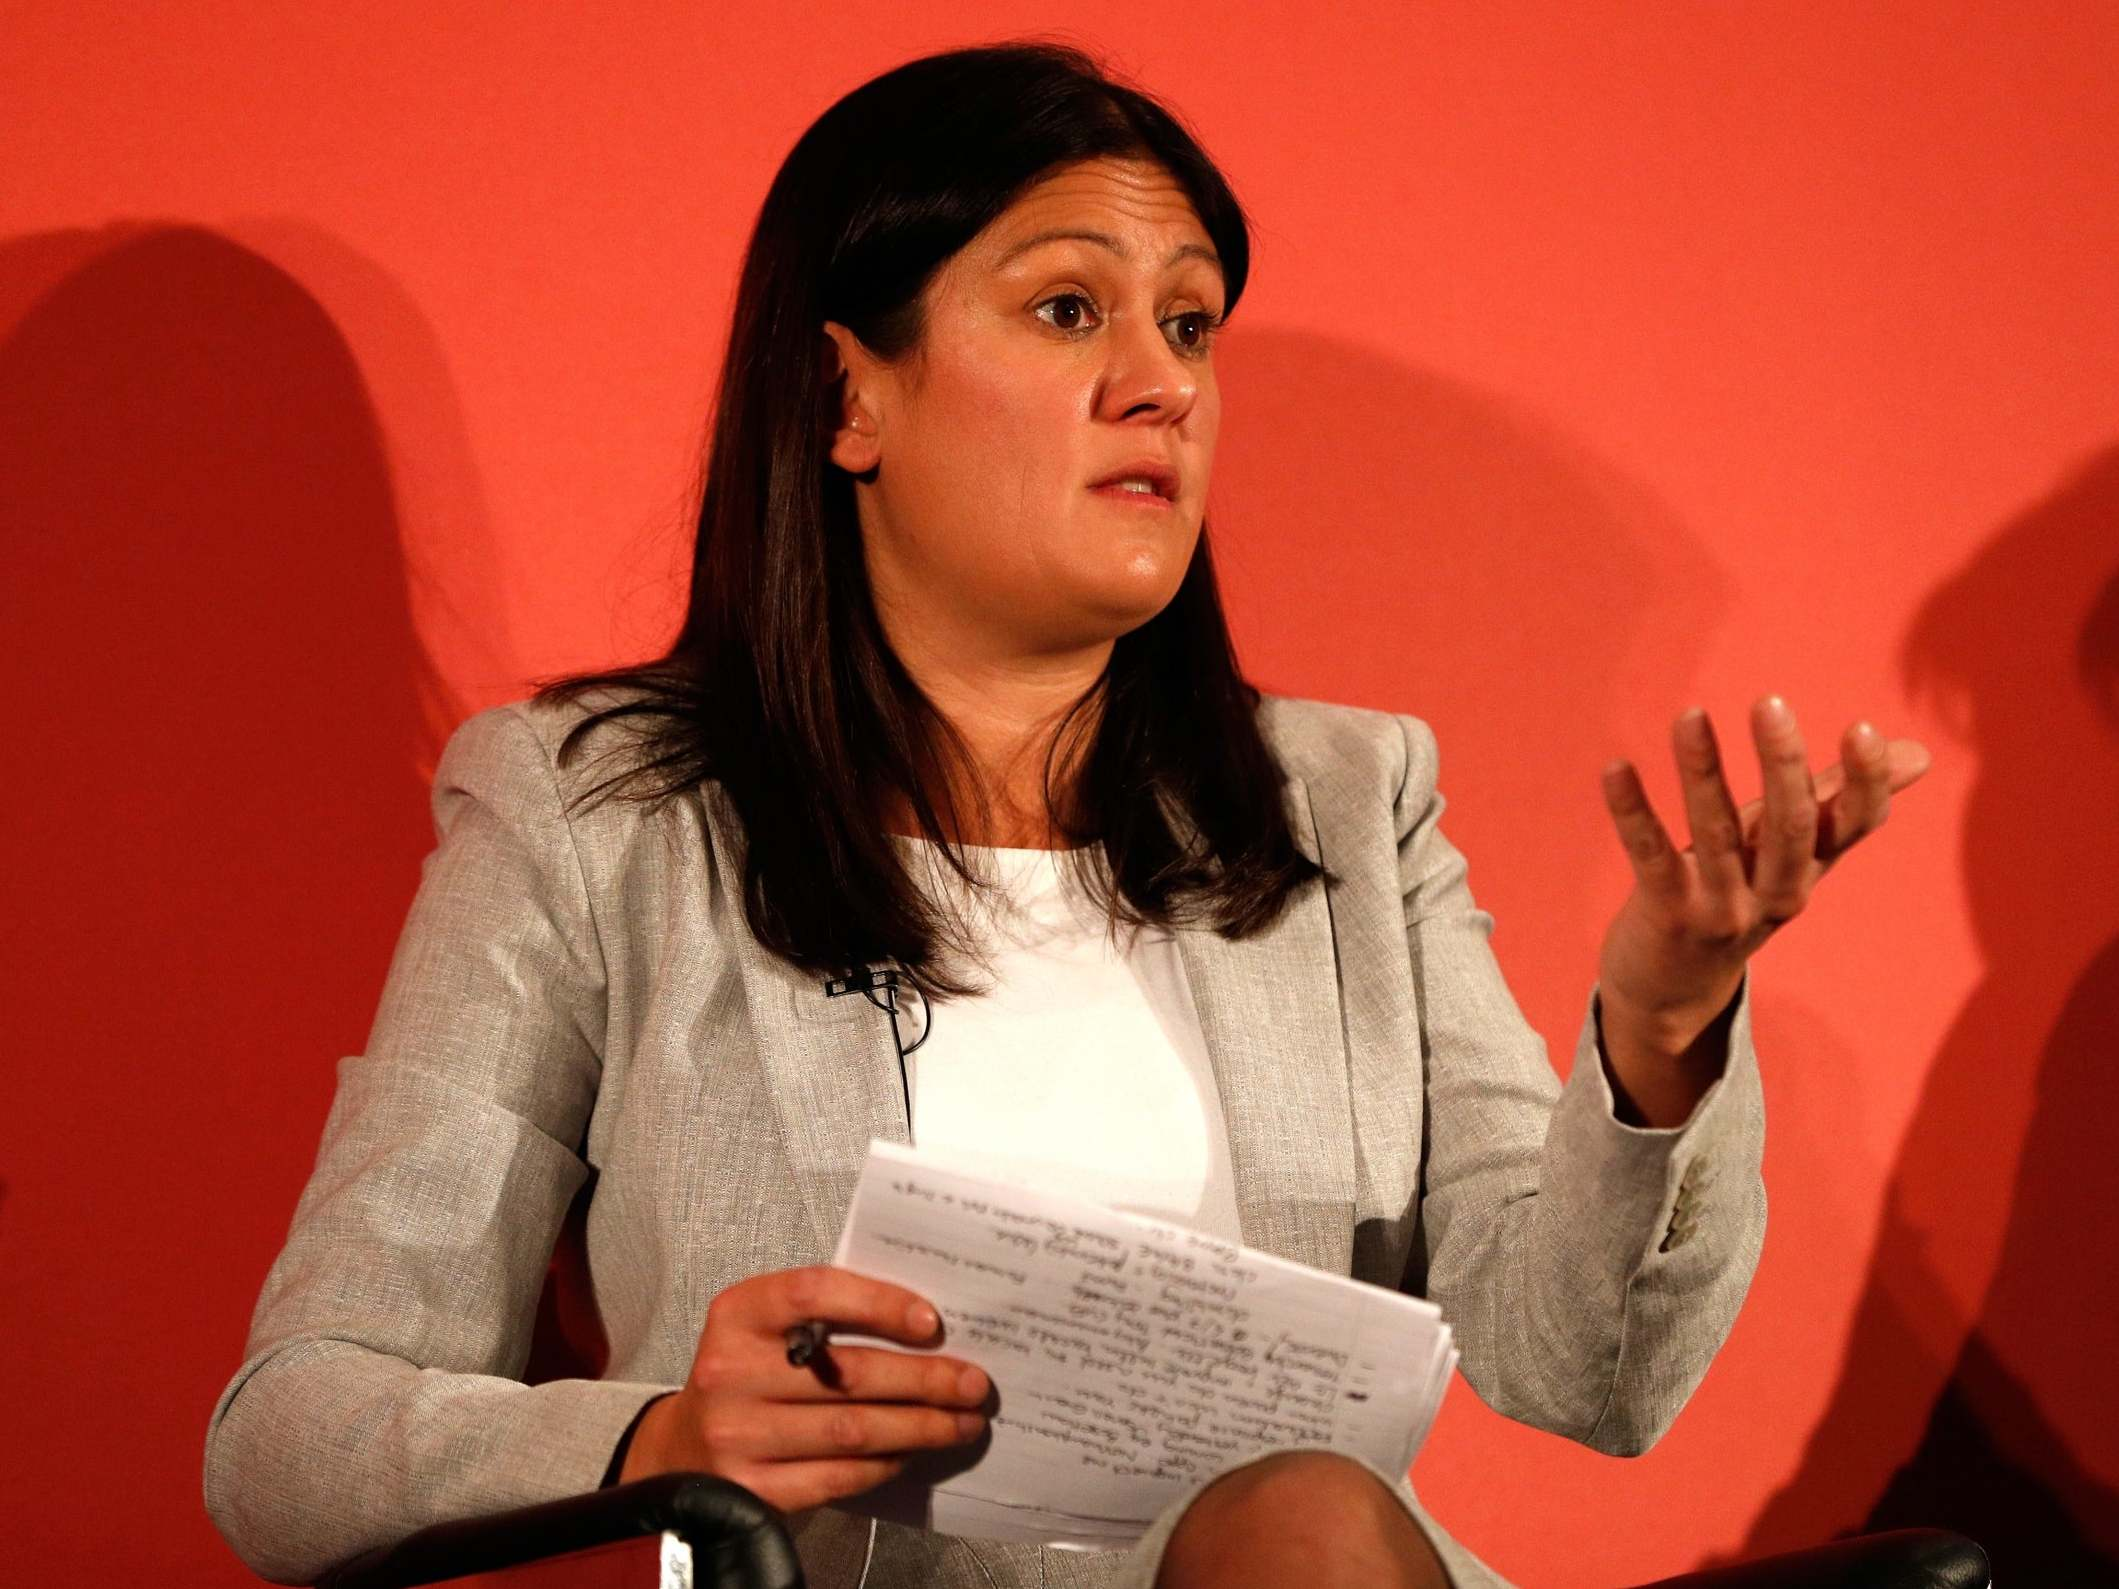 Lisa Nandy: Labour has ignored voters concerns on immigration – as leader, I will have the courage to listen